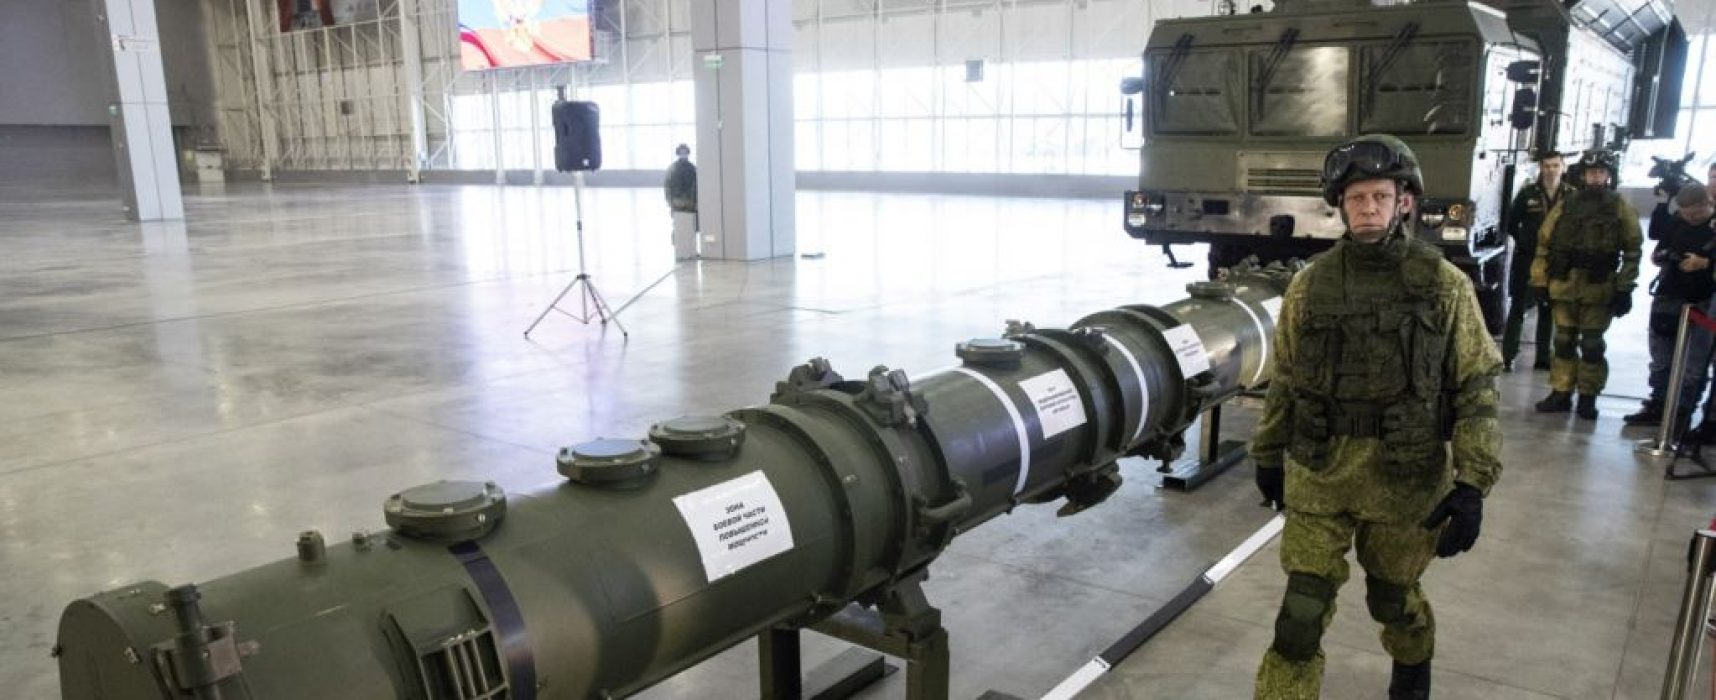 Russia demonstrates missile claiming no violation of INF – only to prove opposite